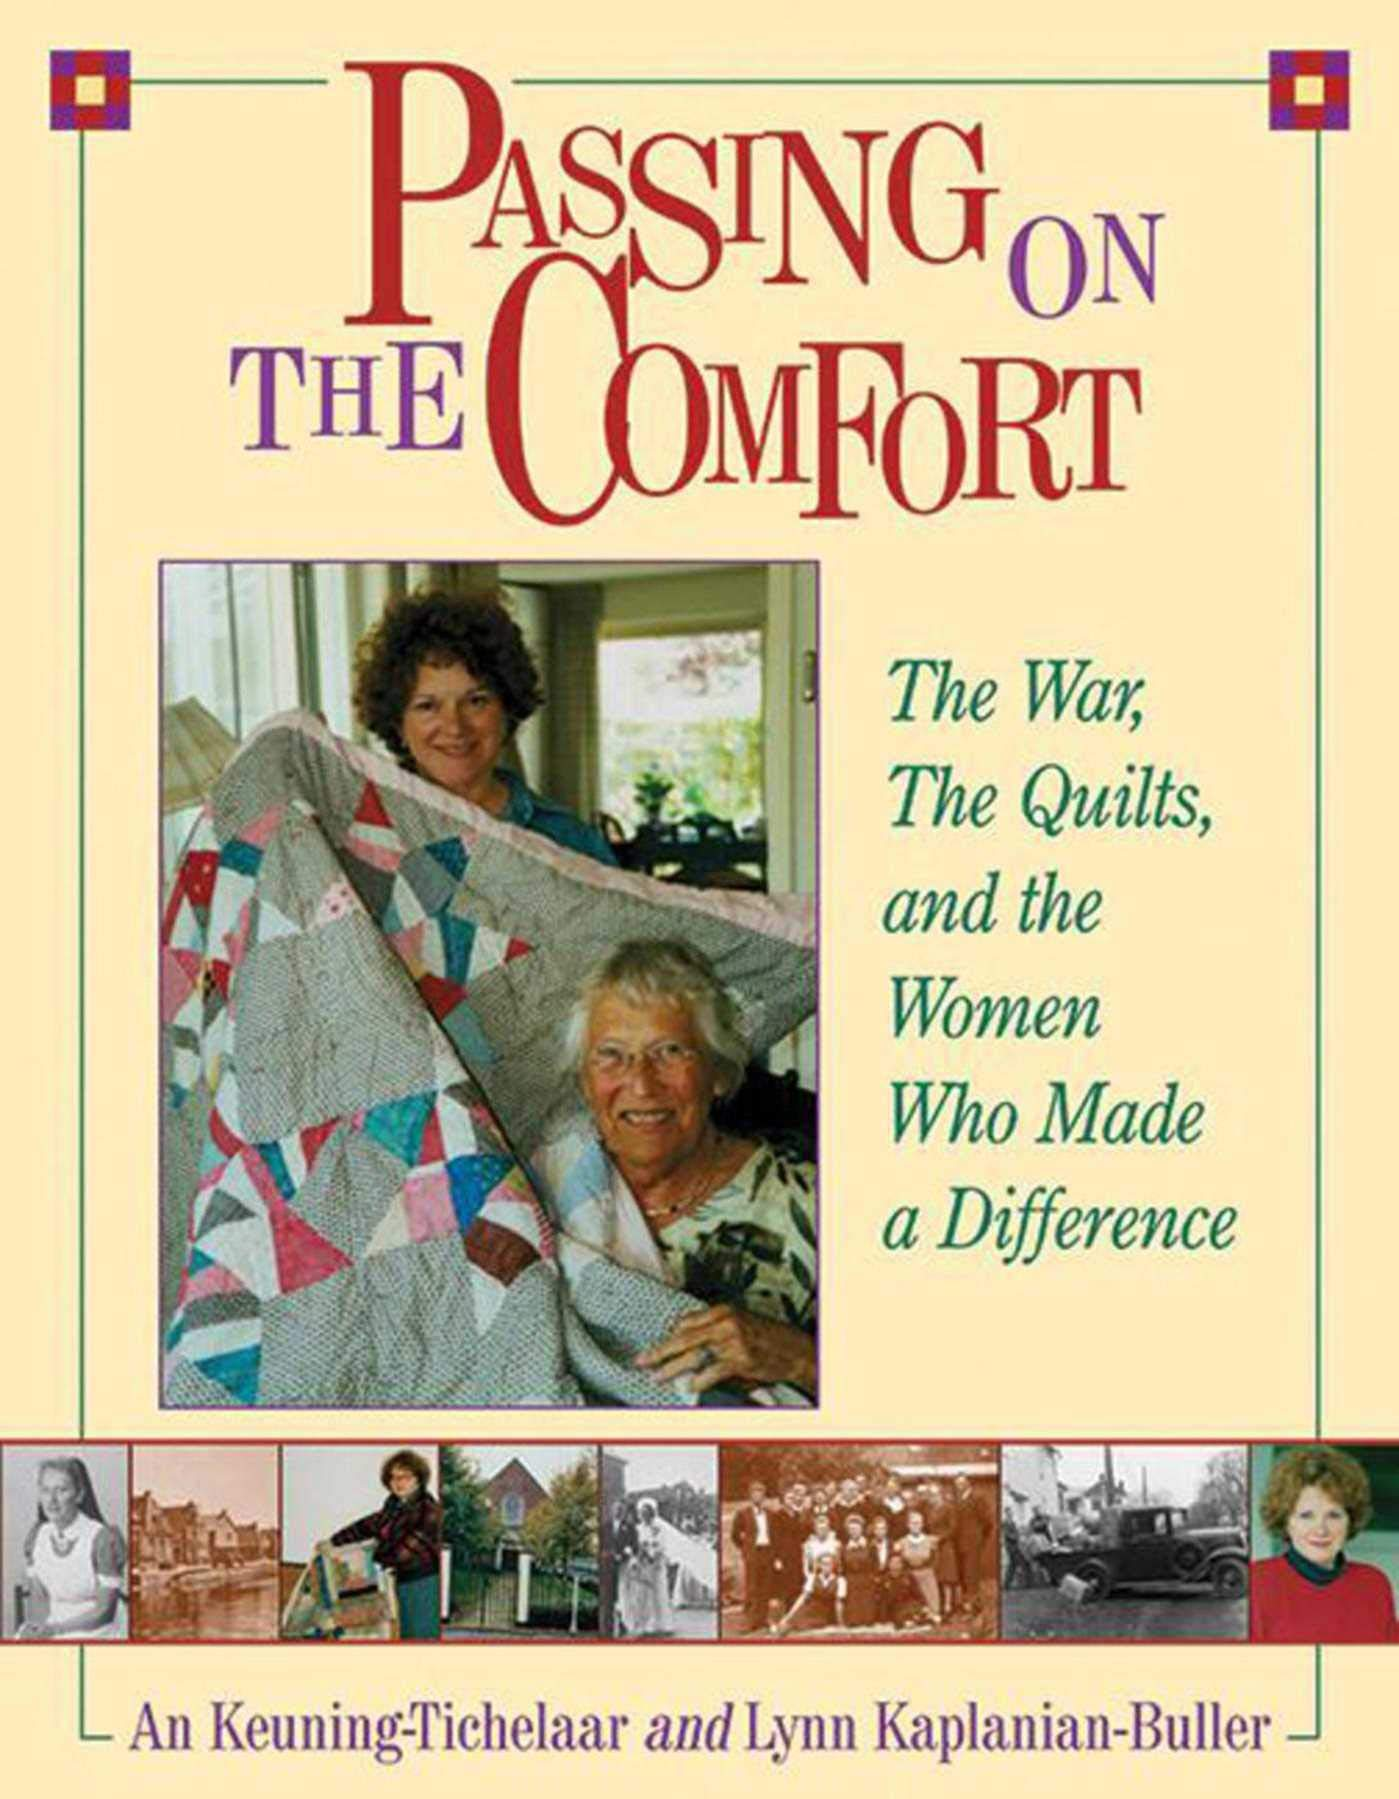 Passing on the Comfort: the War, The Quilts and the Women who made the Difference, by An Keuning-Tichelaar and Lynn Kaplanian-Buller. 2005. Click on the ill. for more information.